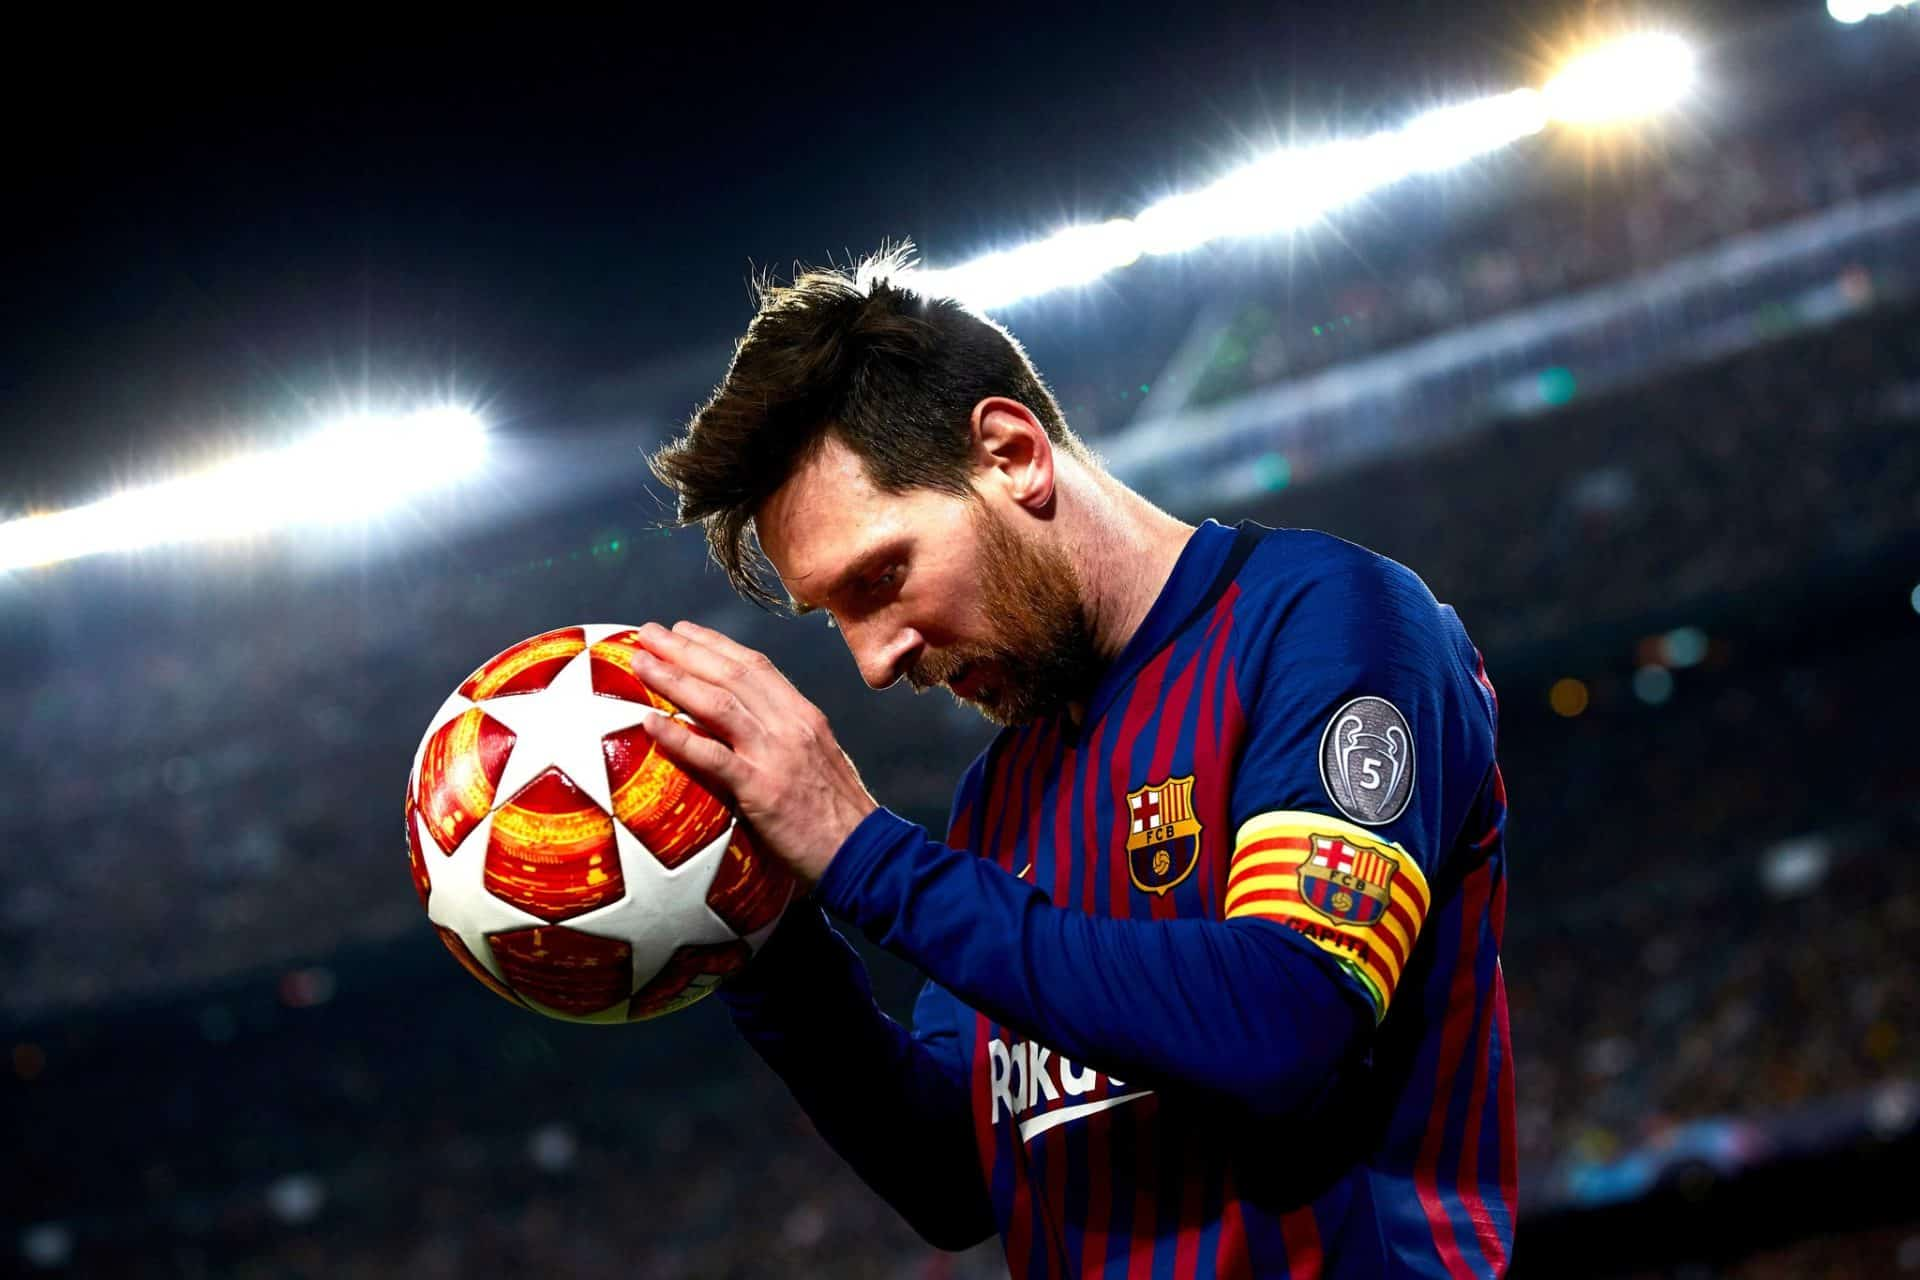 Lionel Messi Becomes a Free Agent